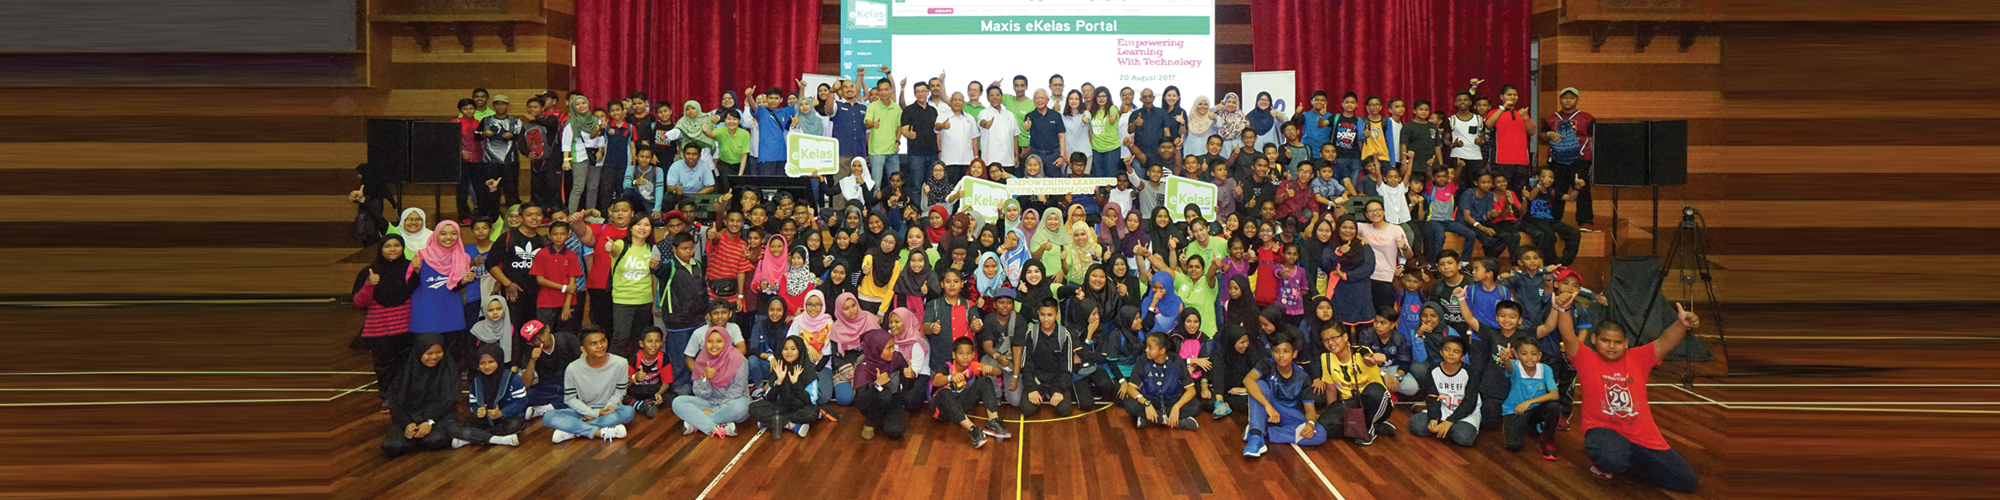 Maxis empowers communities with digital learning through its community outreach programme, eKelas